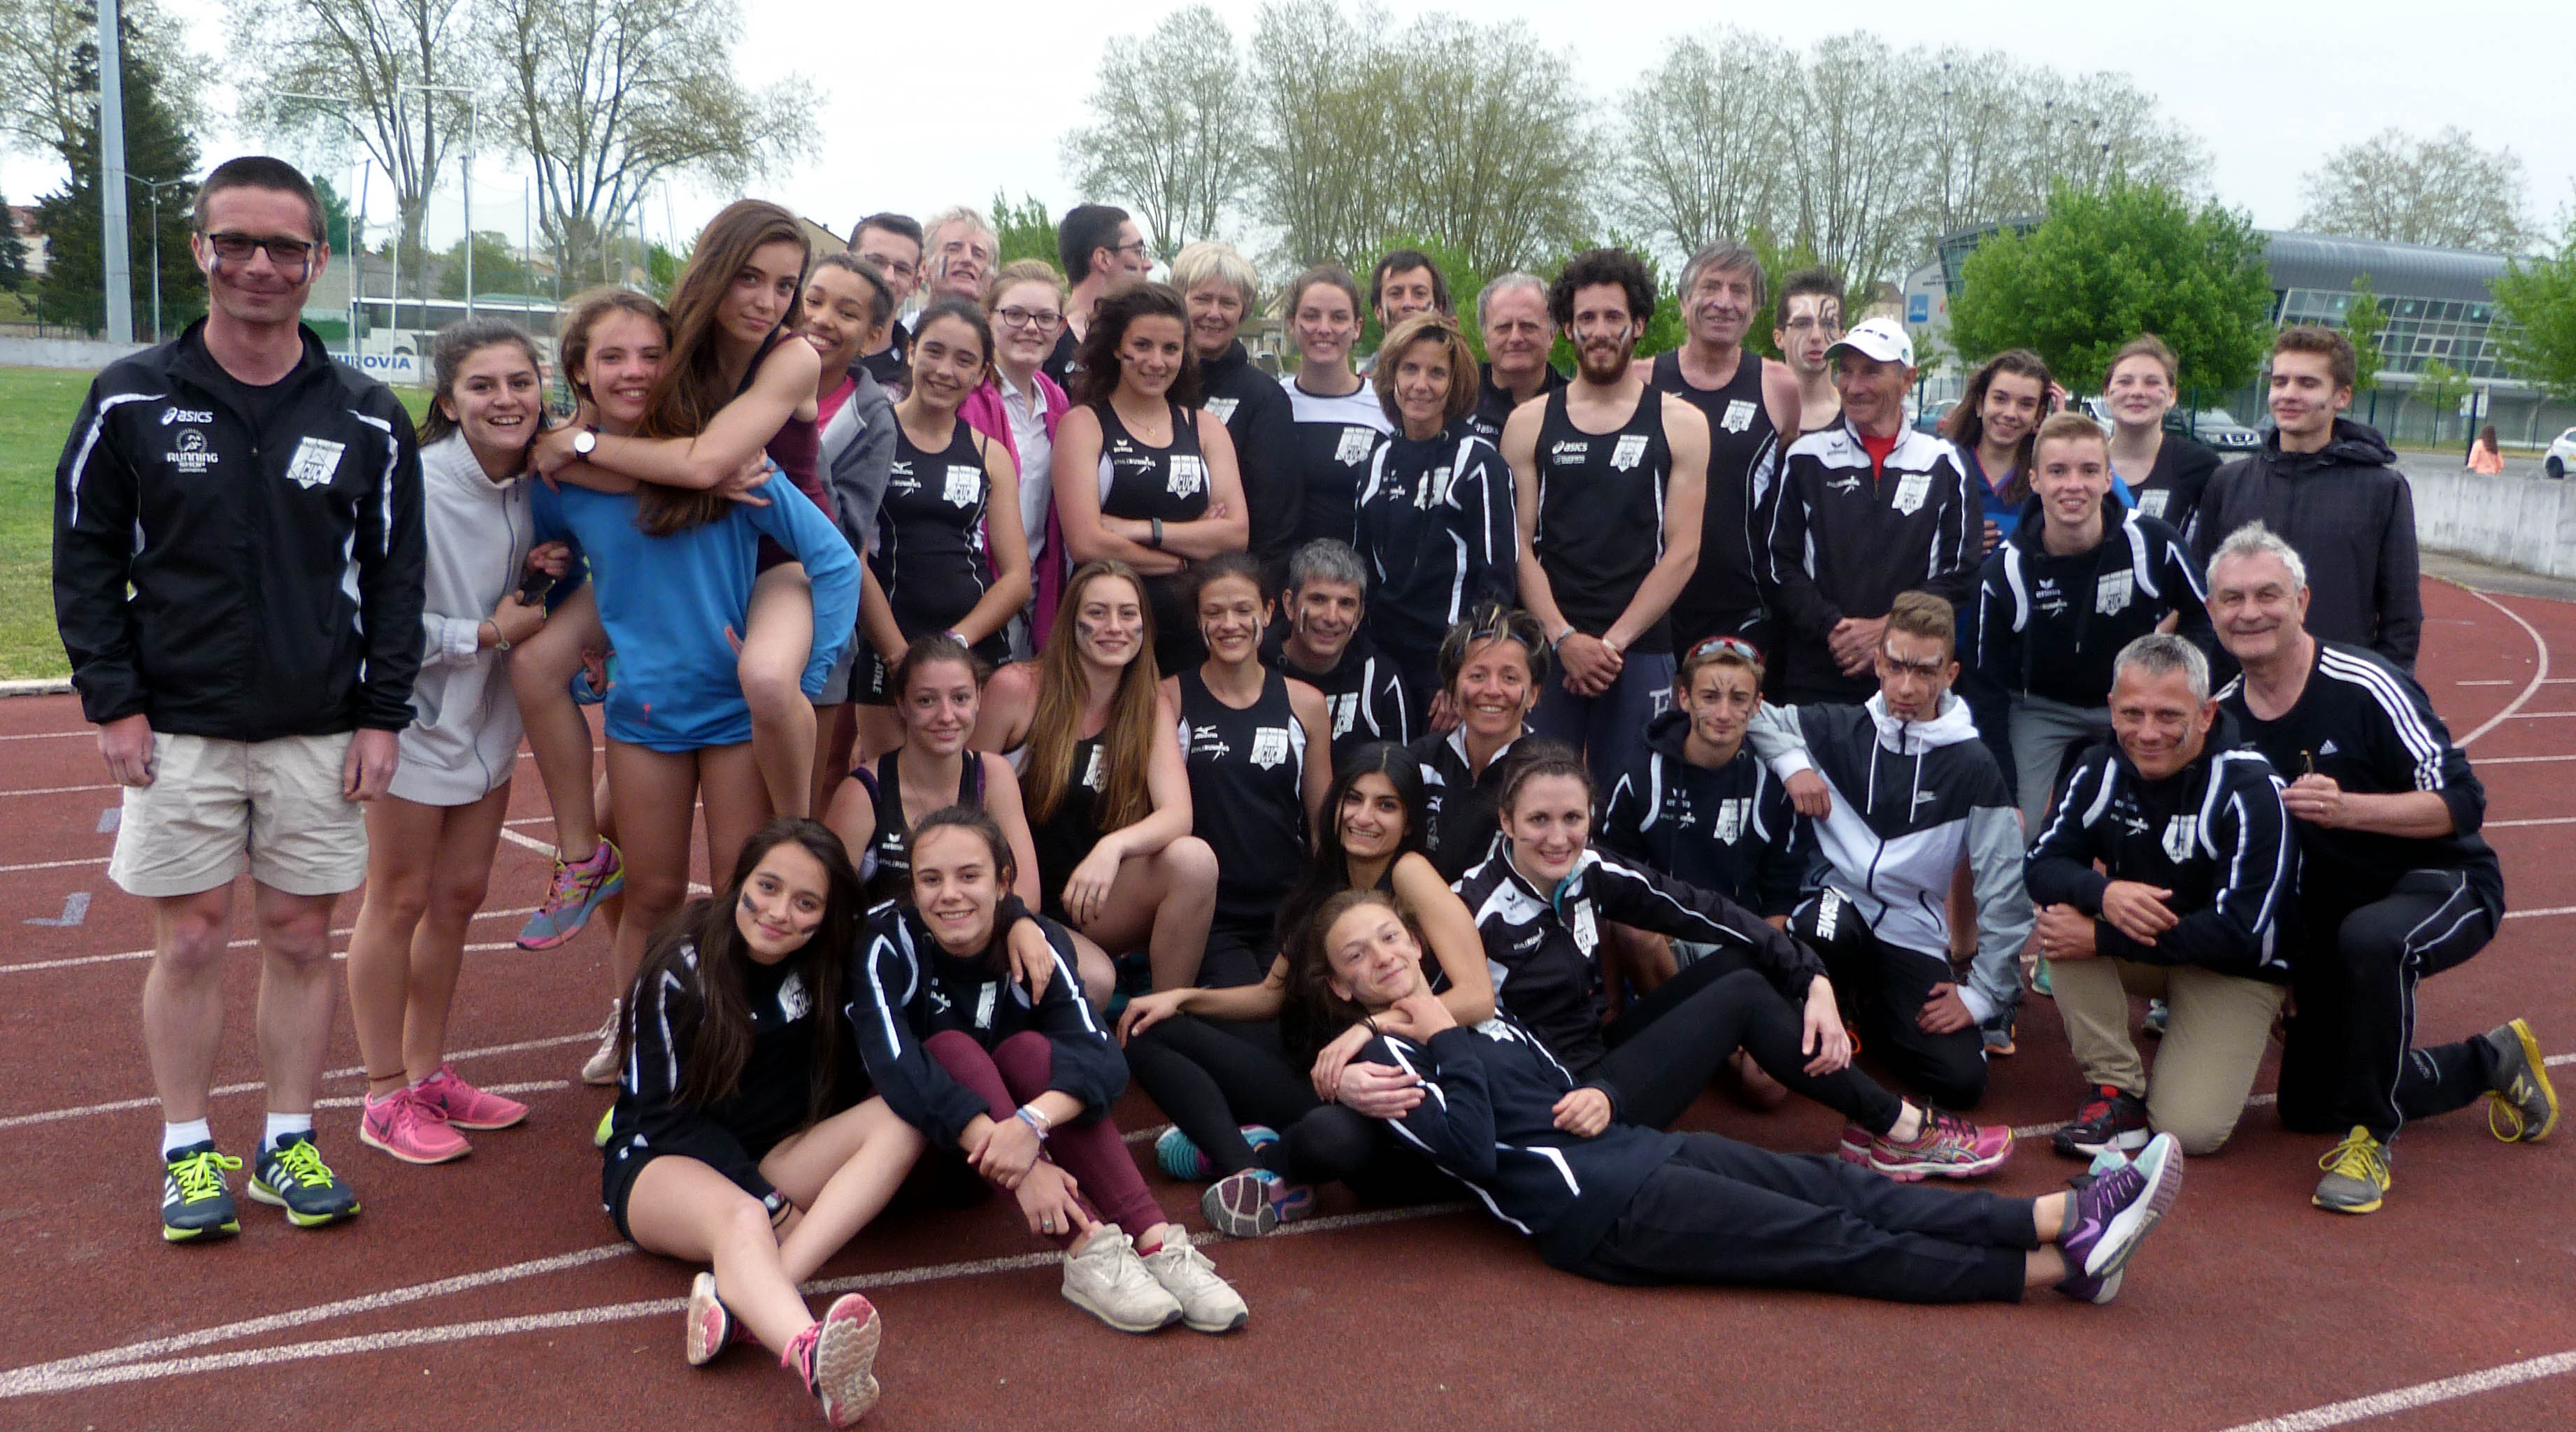 Interclubs2016 groupe